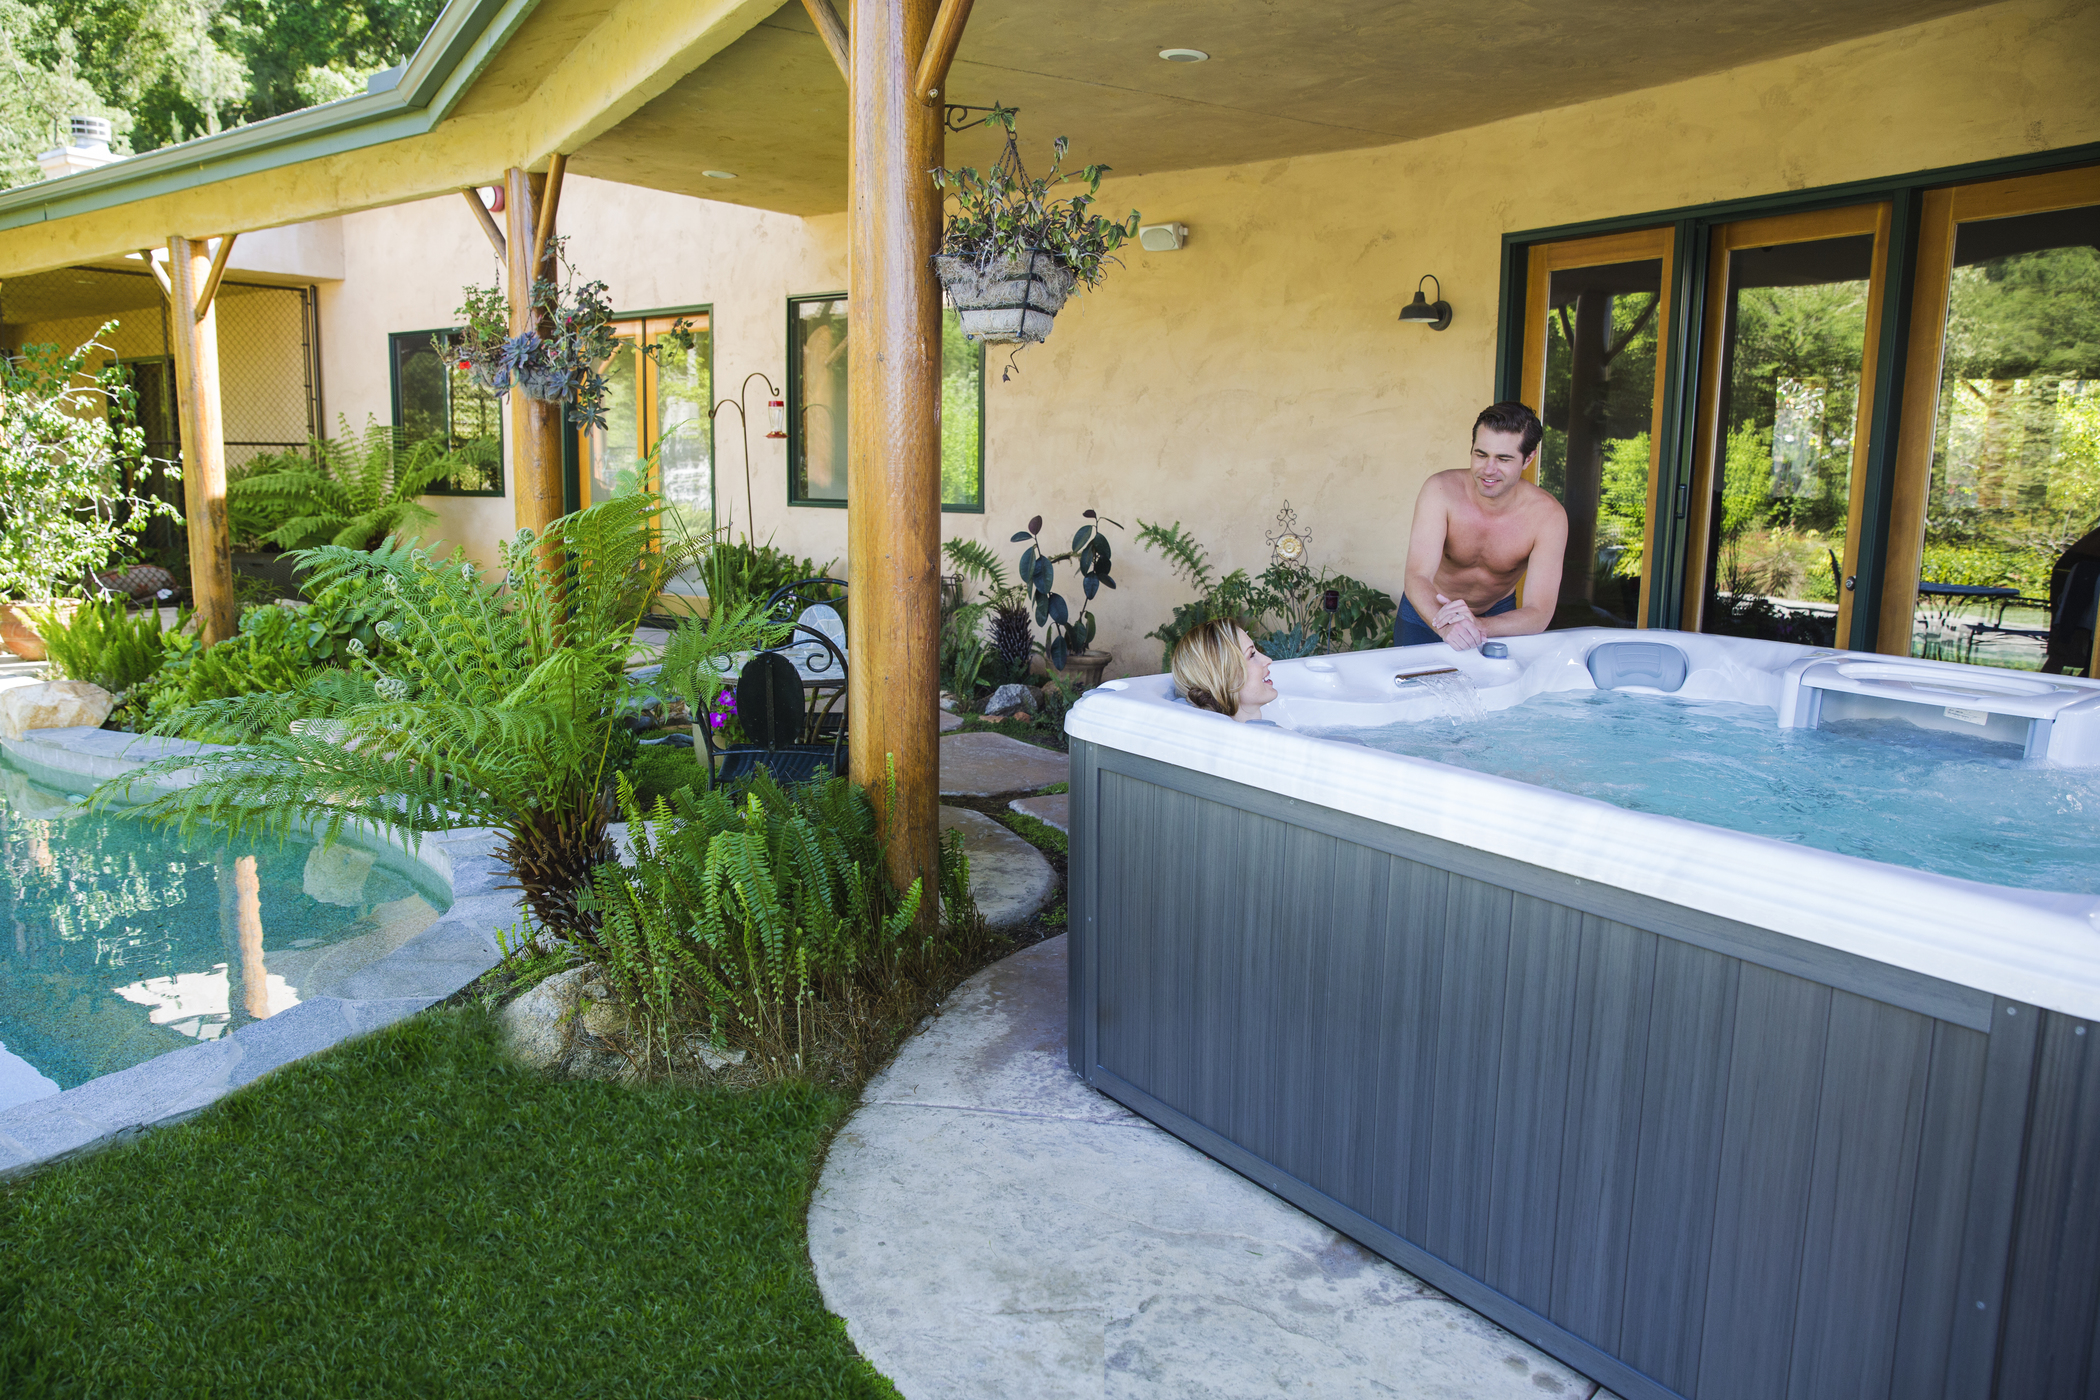 How Long Should I Stay Inside a Hot Tub For?